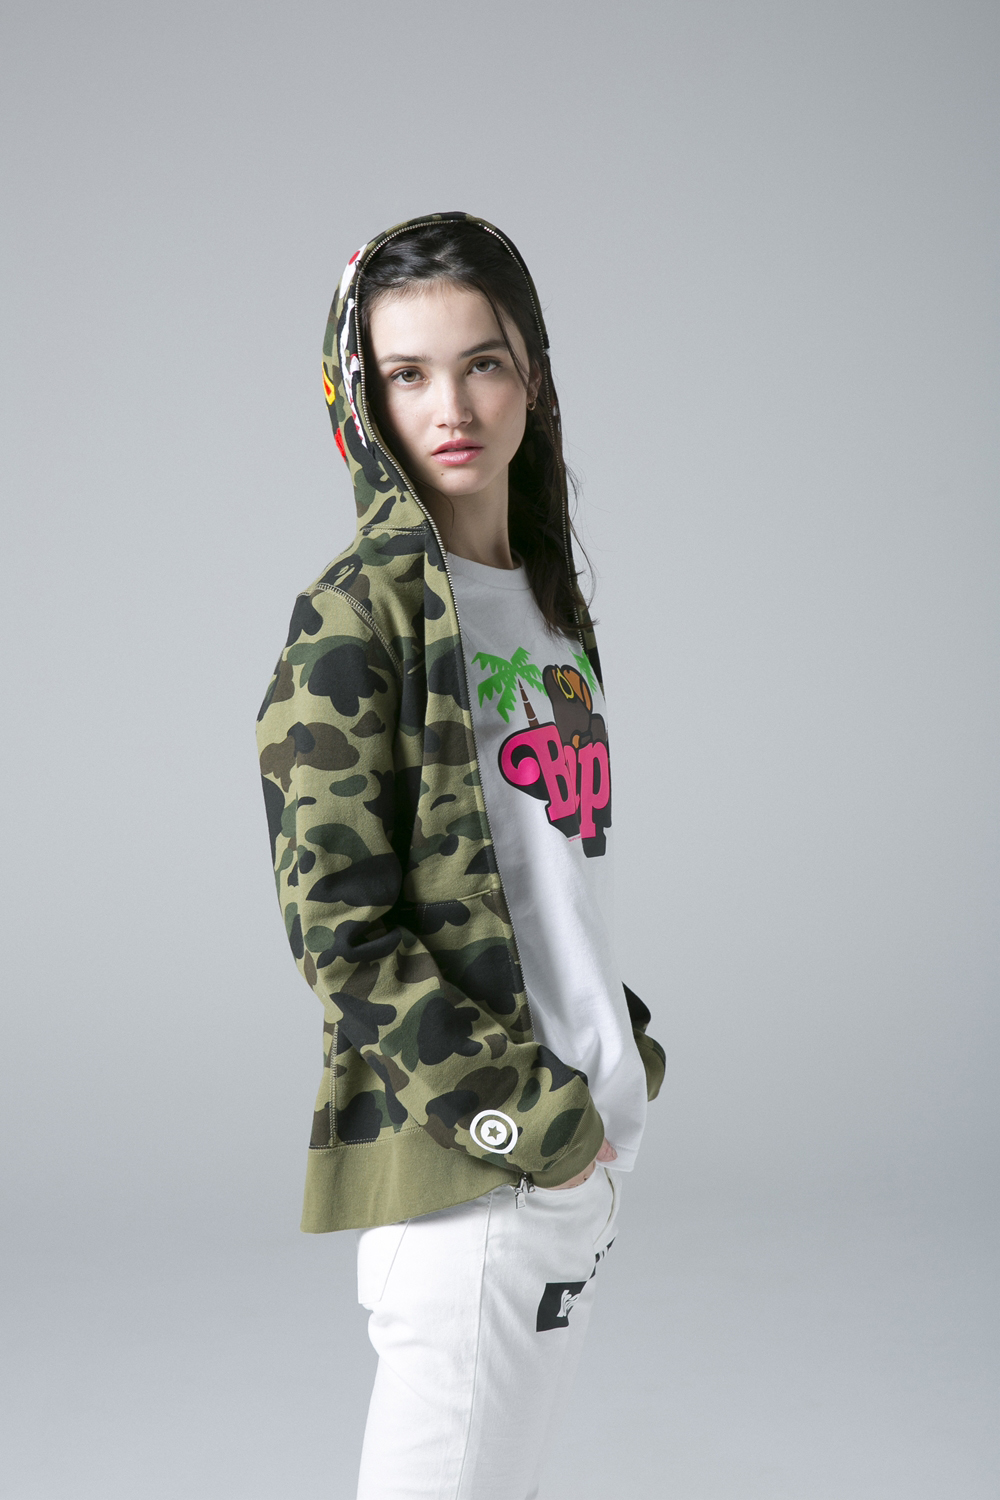 BAPE 2017 Spring Summer Lookbook